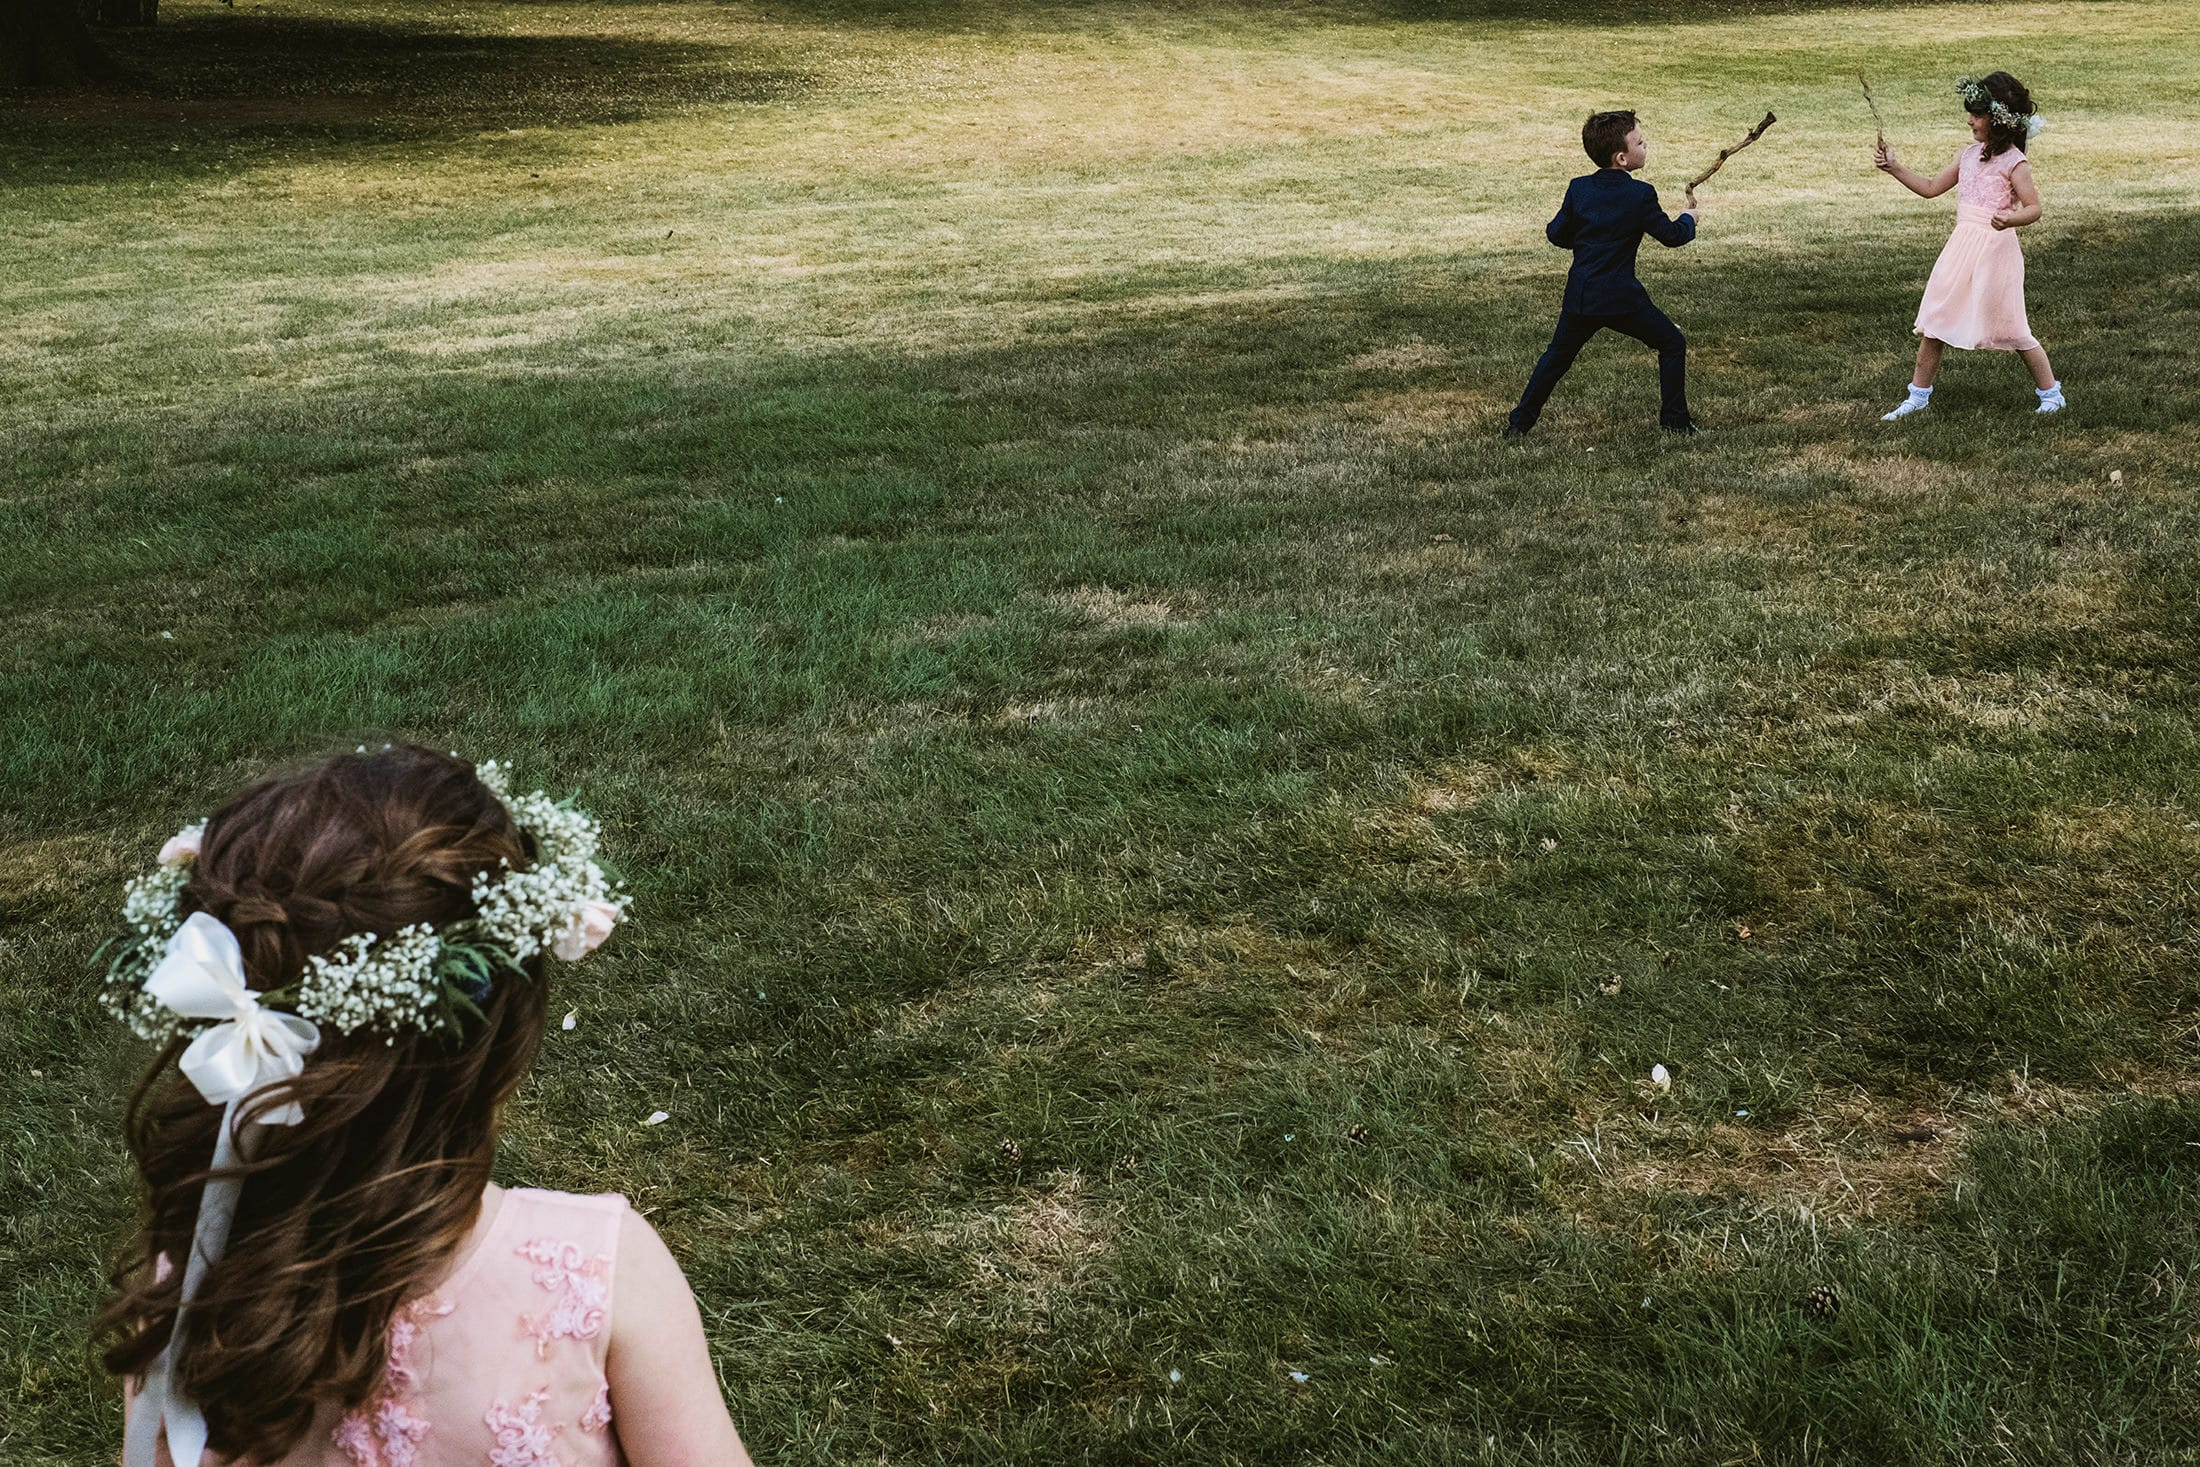 children playing with sticks, young flower girl watching on